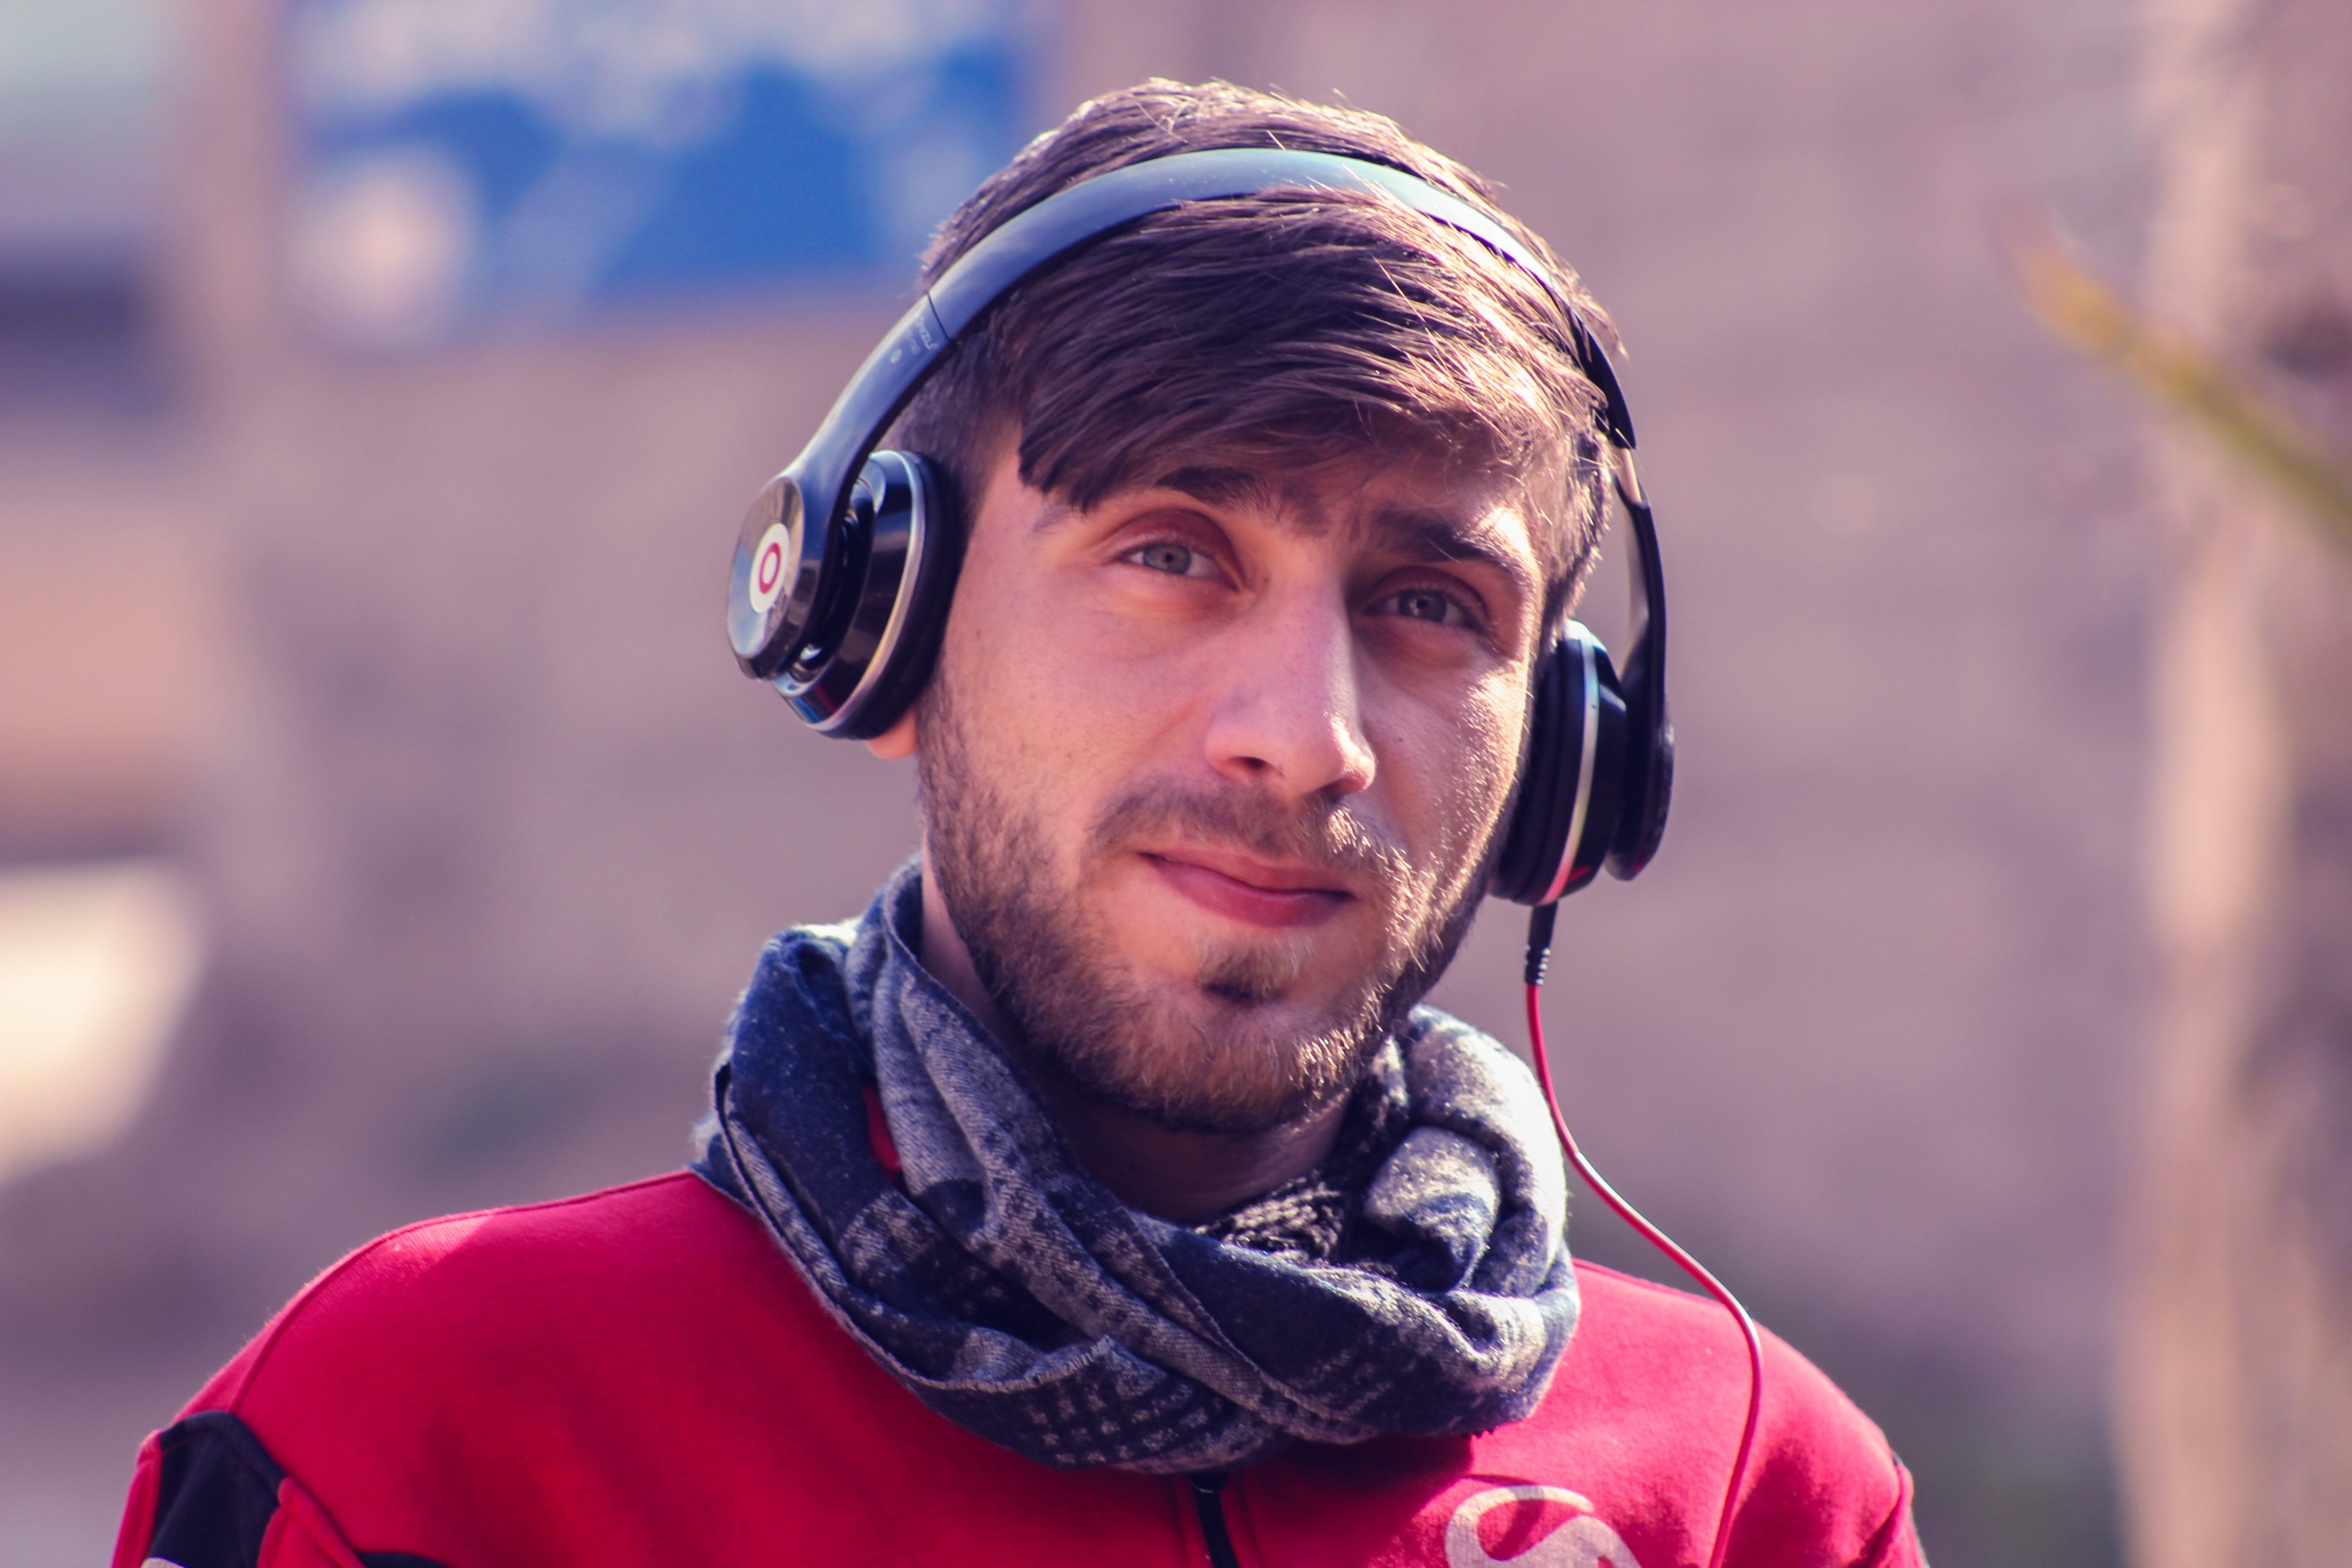 Closeup Photo of a Man Wearing Red Top, Gray Scarf, and Black Beats by Dr. Dre Headphones